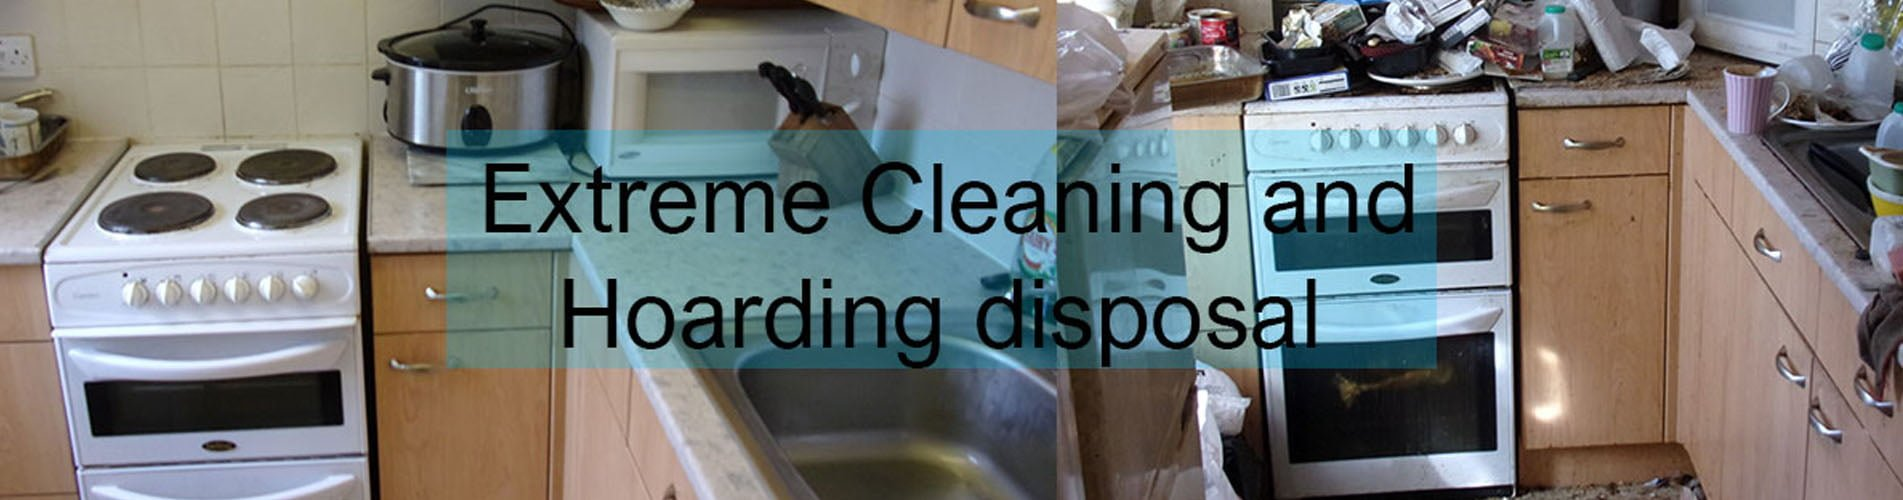 Property Deep Cleaning & Hoarding Service